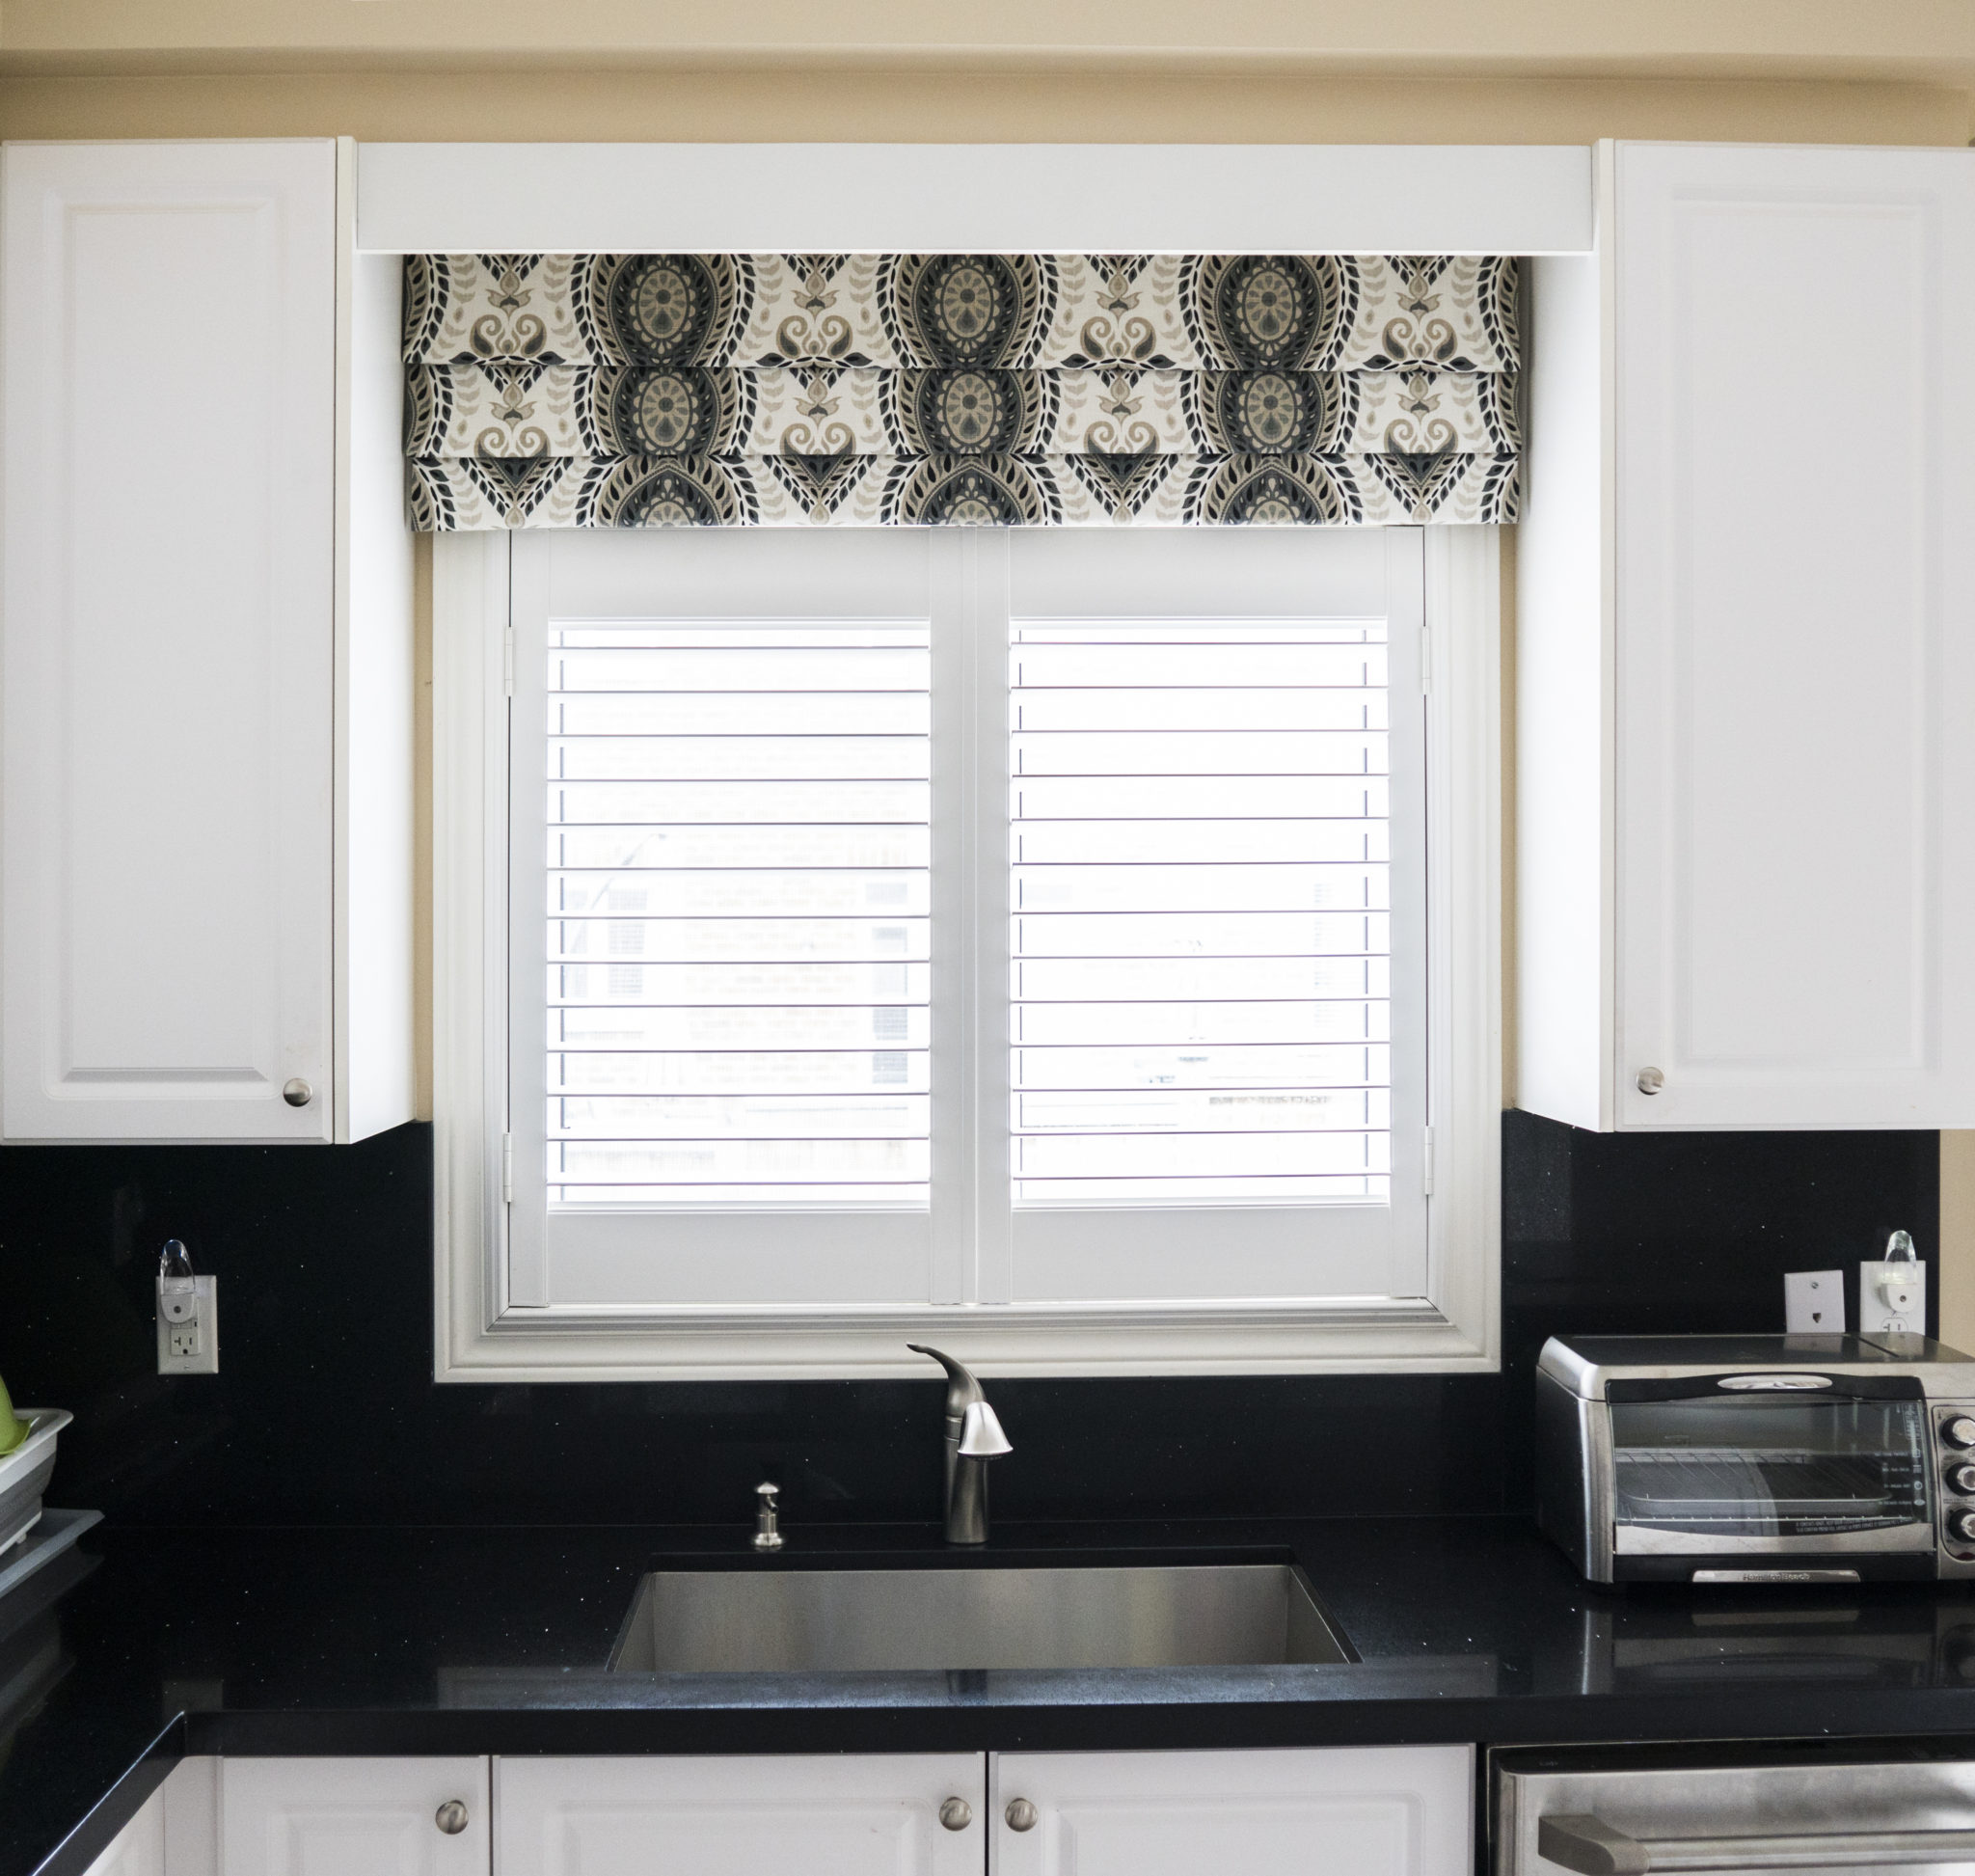 coupons blinds bathroom rods dazzling enchanting credit valance curtain jobs window covering jcpenney living surprising service for dining card indeed login orange astounding valances windowtreatments customer room portraits and endearing curtains blackout